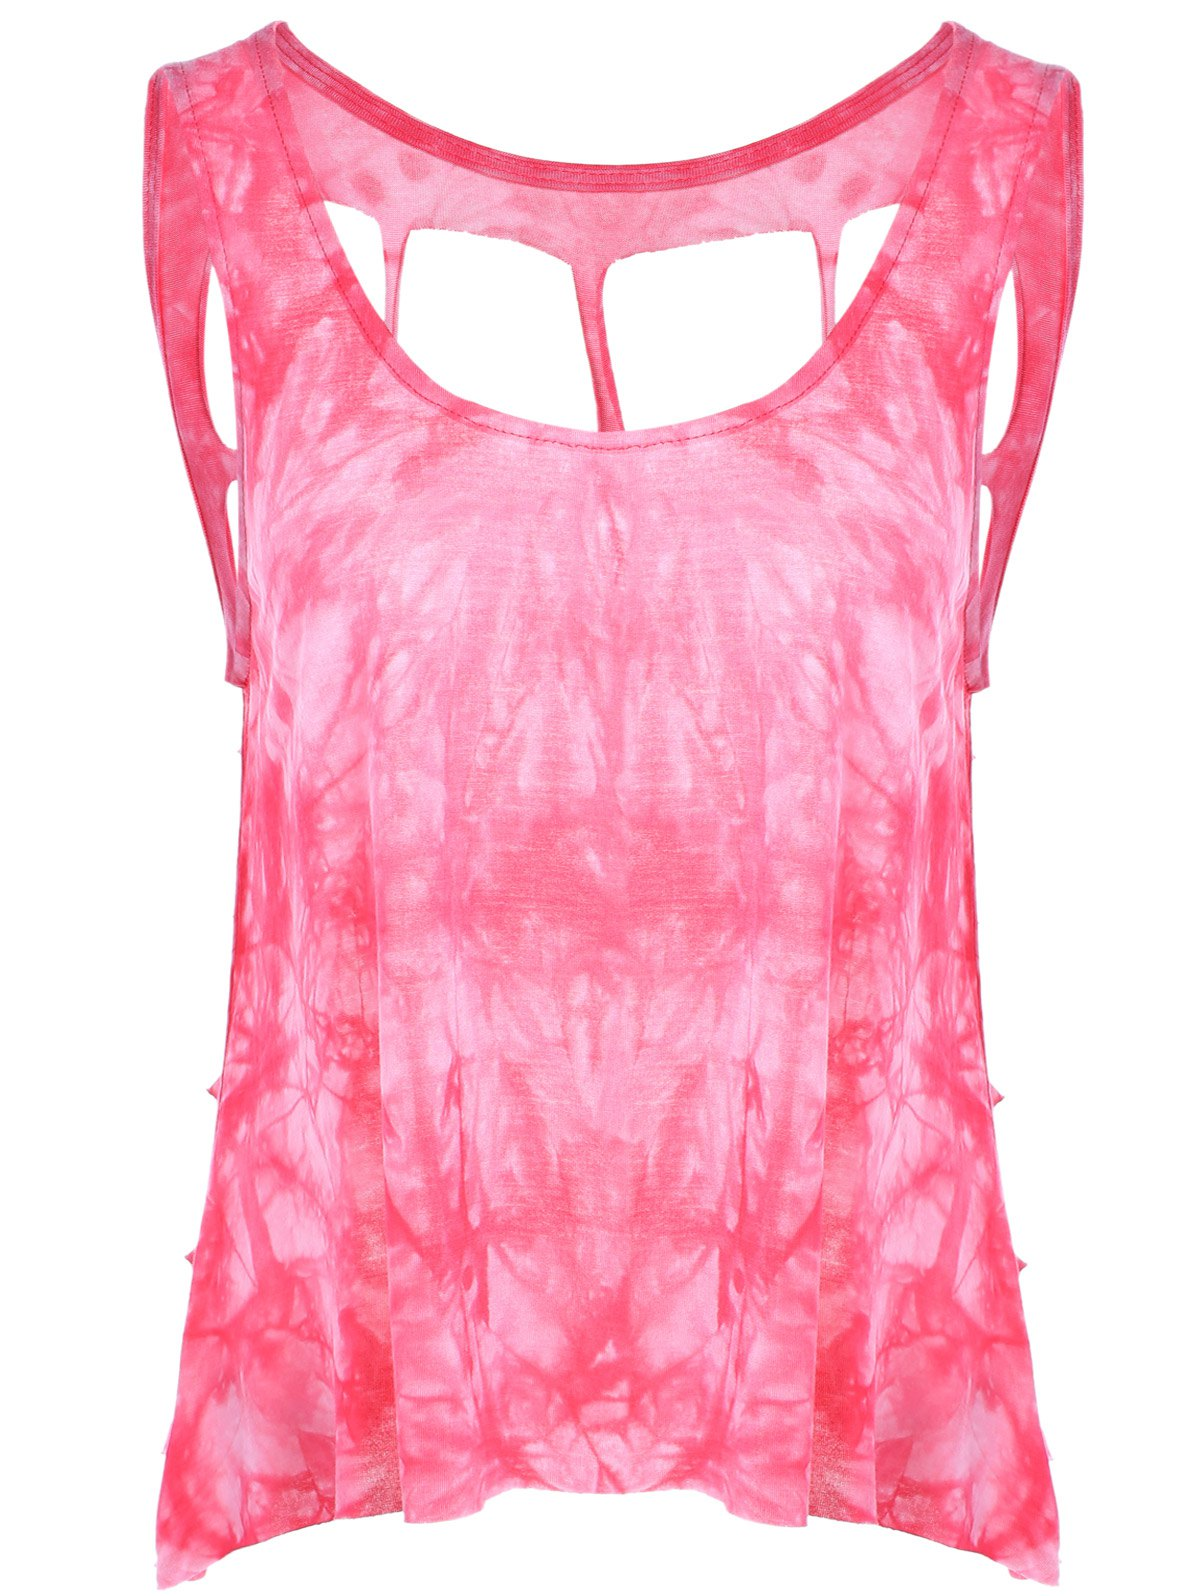 Stylish Women's Scoop Neck Tie-Dyed Tank Top - ROSE ONE SIZE(FIT SIZE XS TO M)